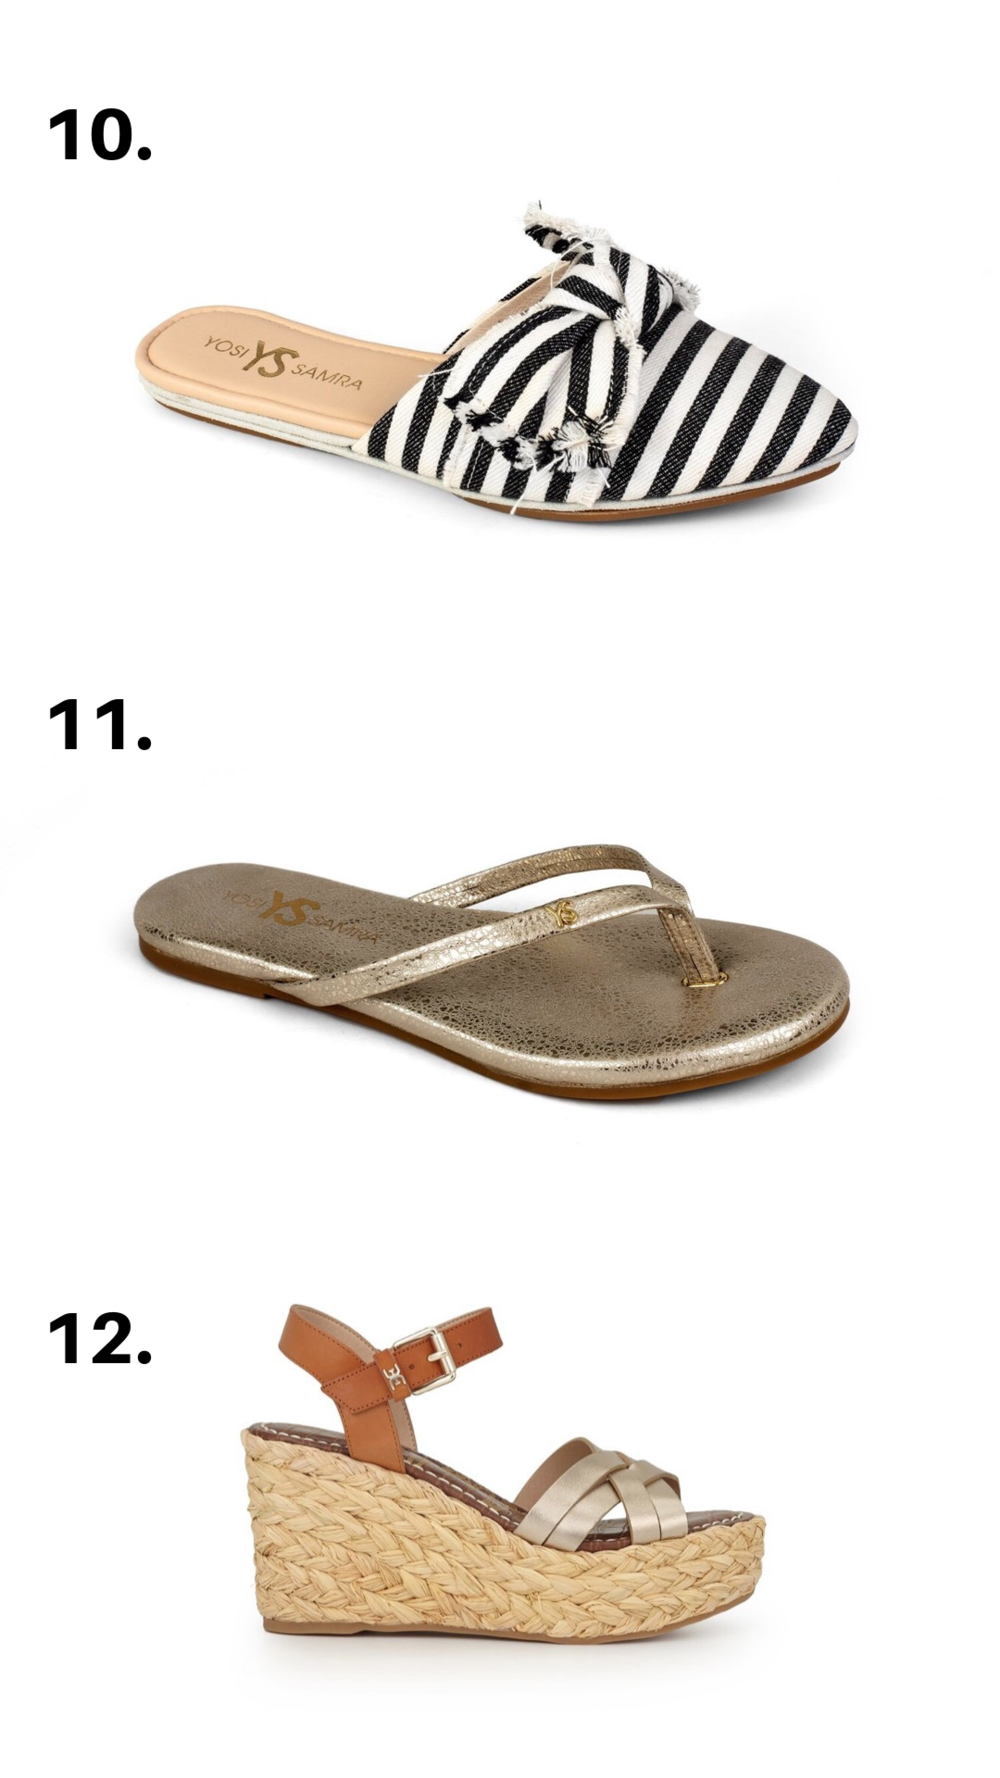 - 10. The Simply Striped cute and comfy slides that can take you from shopping to dinner. These are a must have for your summer wardrobe.CLICK TO PURCHASE———————————————————-11. The Fine Flops make flip flops look so elegant! The perfect pair of thong sandals for a beach trip. They come in gold metallic, black, and snakeskin.CLICK TO PURCHASE———————————————12. The Summer Staple you must have this season. Espadrilles are all the rage because the styling possibilities are endless. They also available in black.CLICK TO PURCHASE